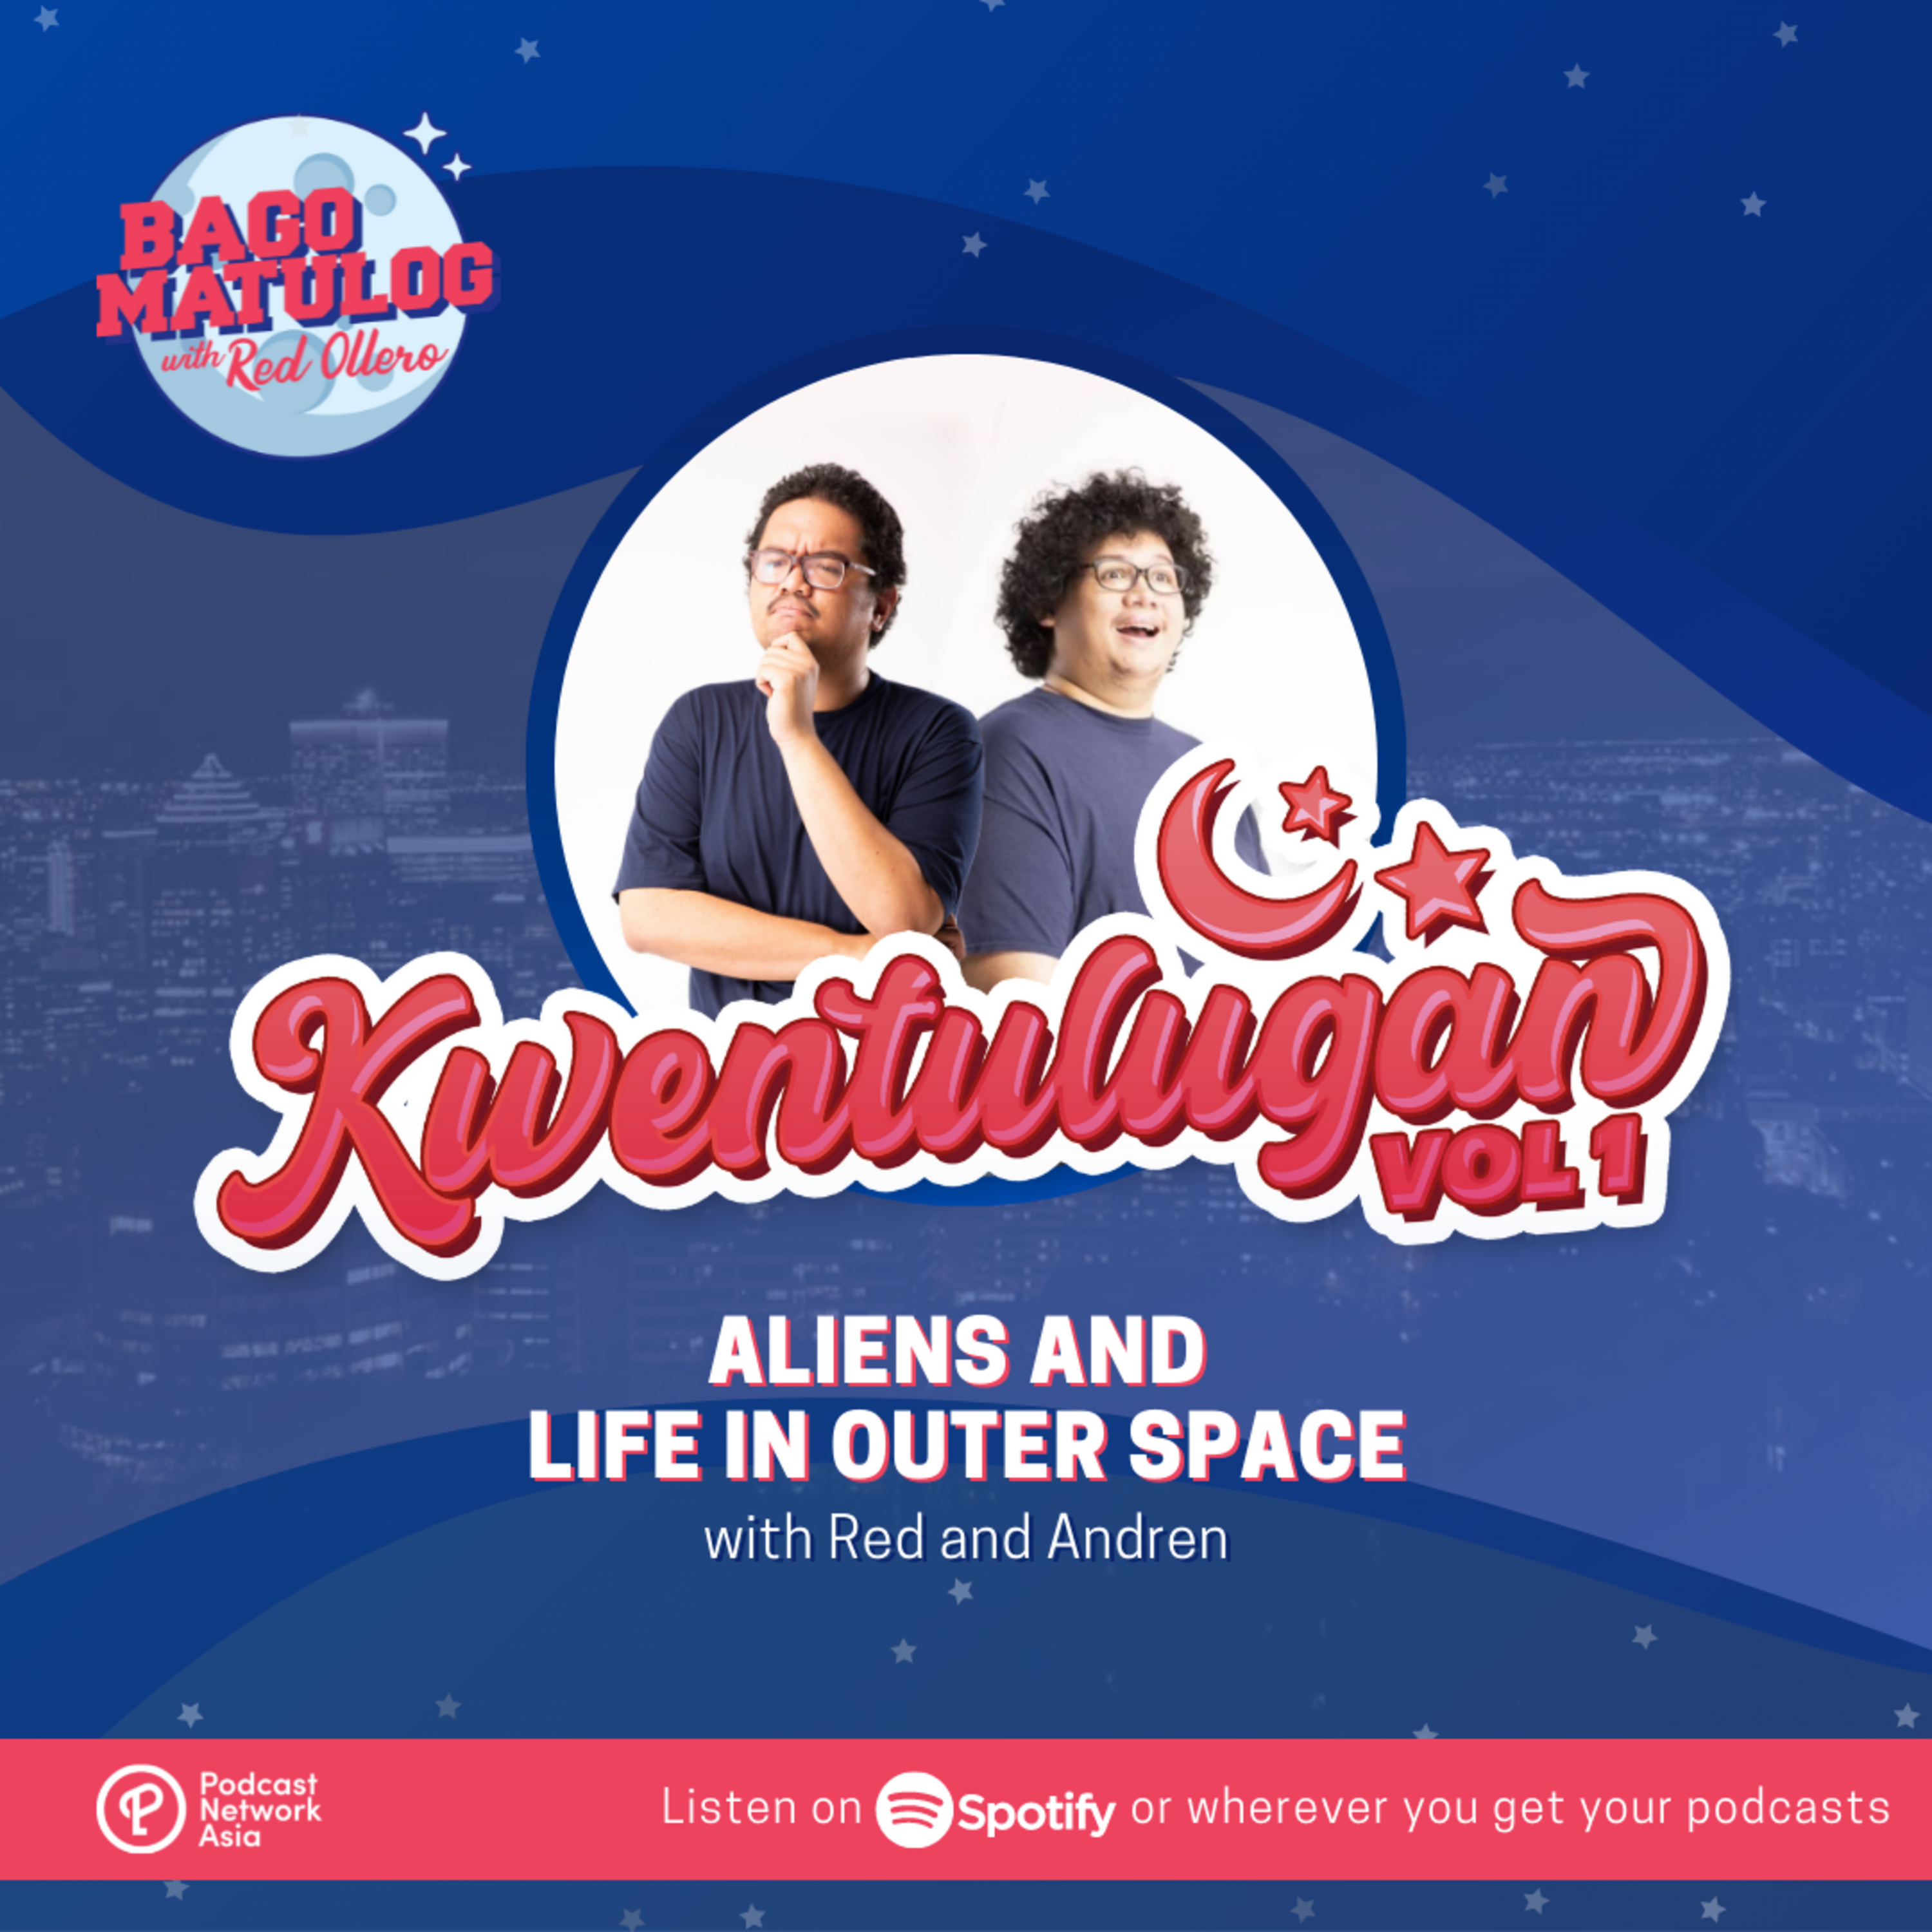 KWENTULUGAN VOL. 1 – Aliens & Life in Outer Space